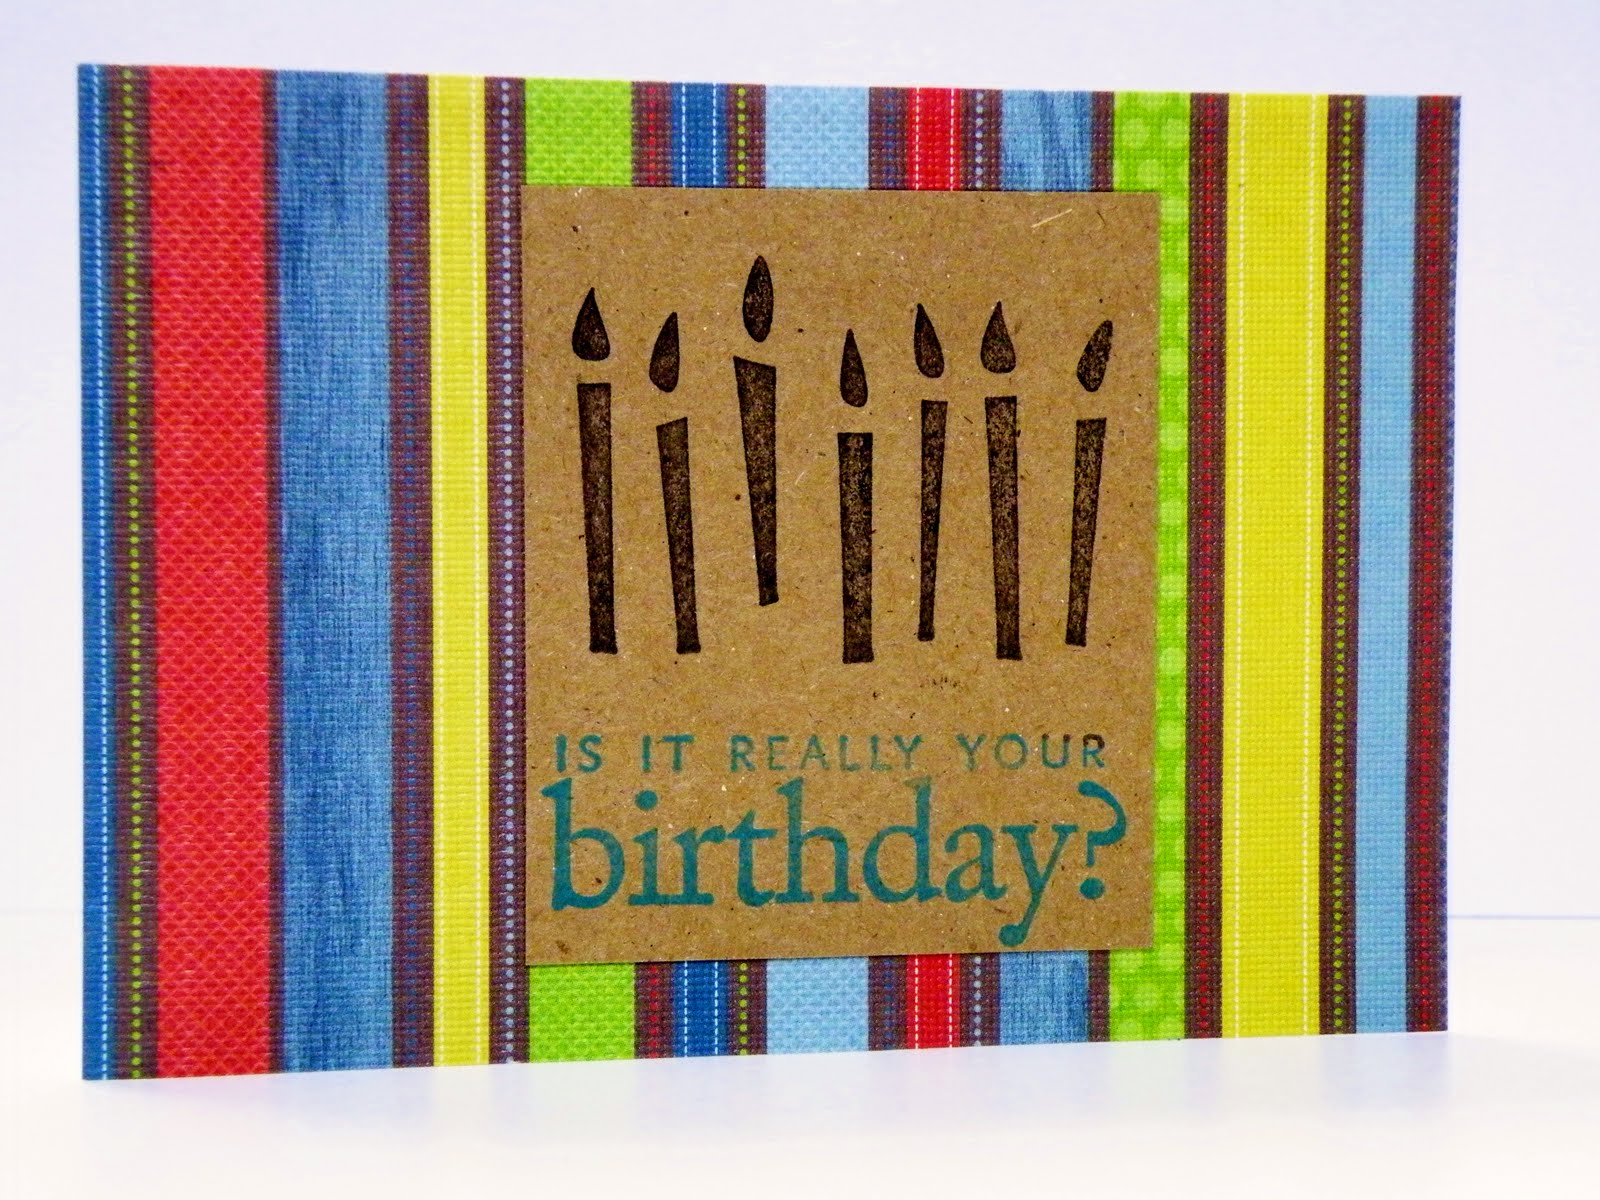 Birthday Cards Brother In Law ~ The crafty housewife: brother in laws birthday card!